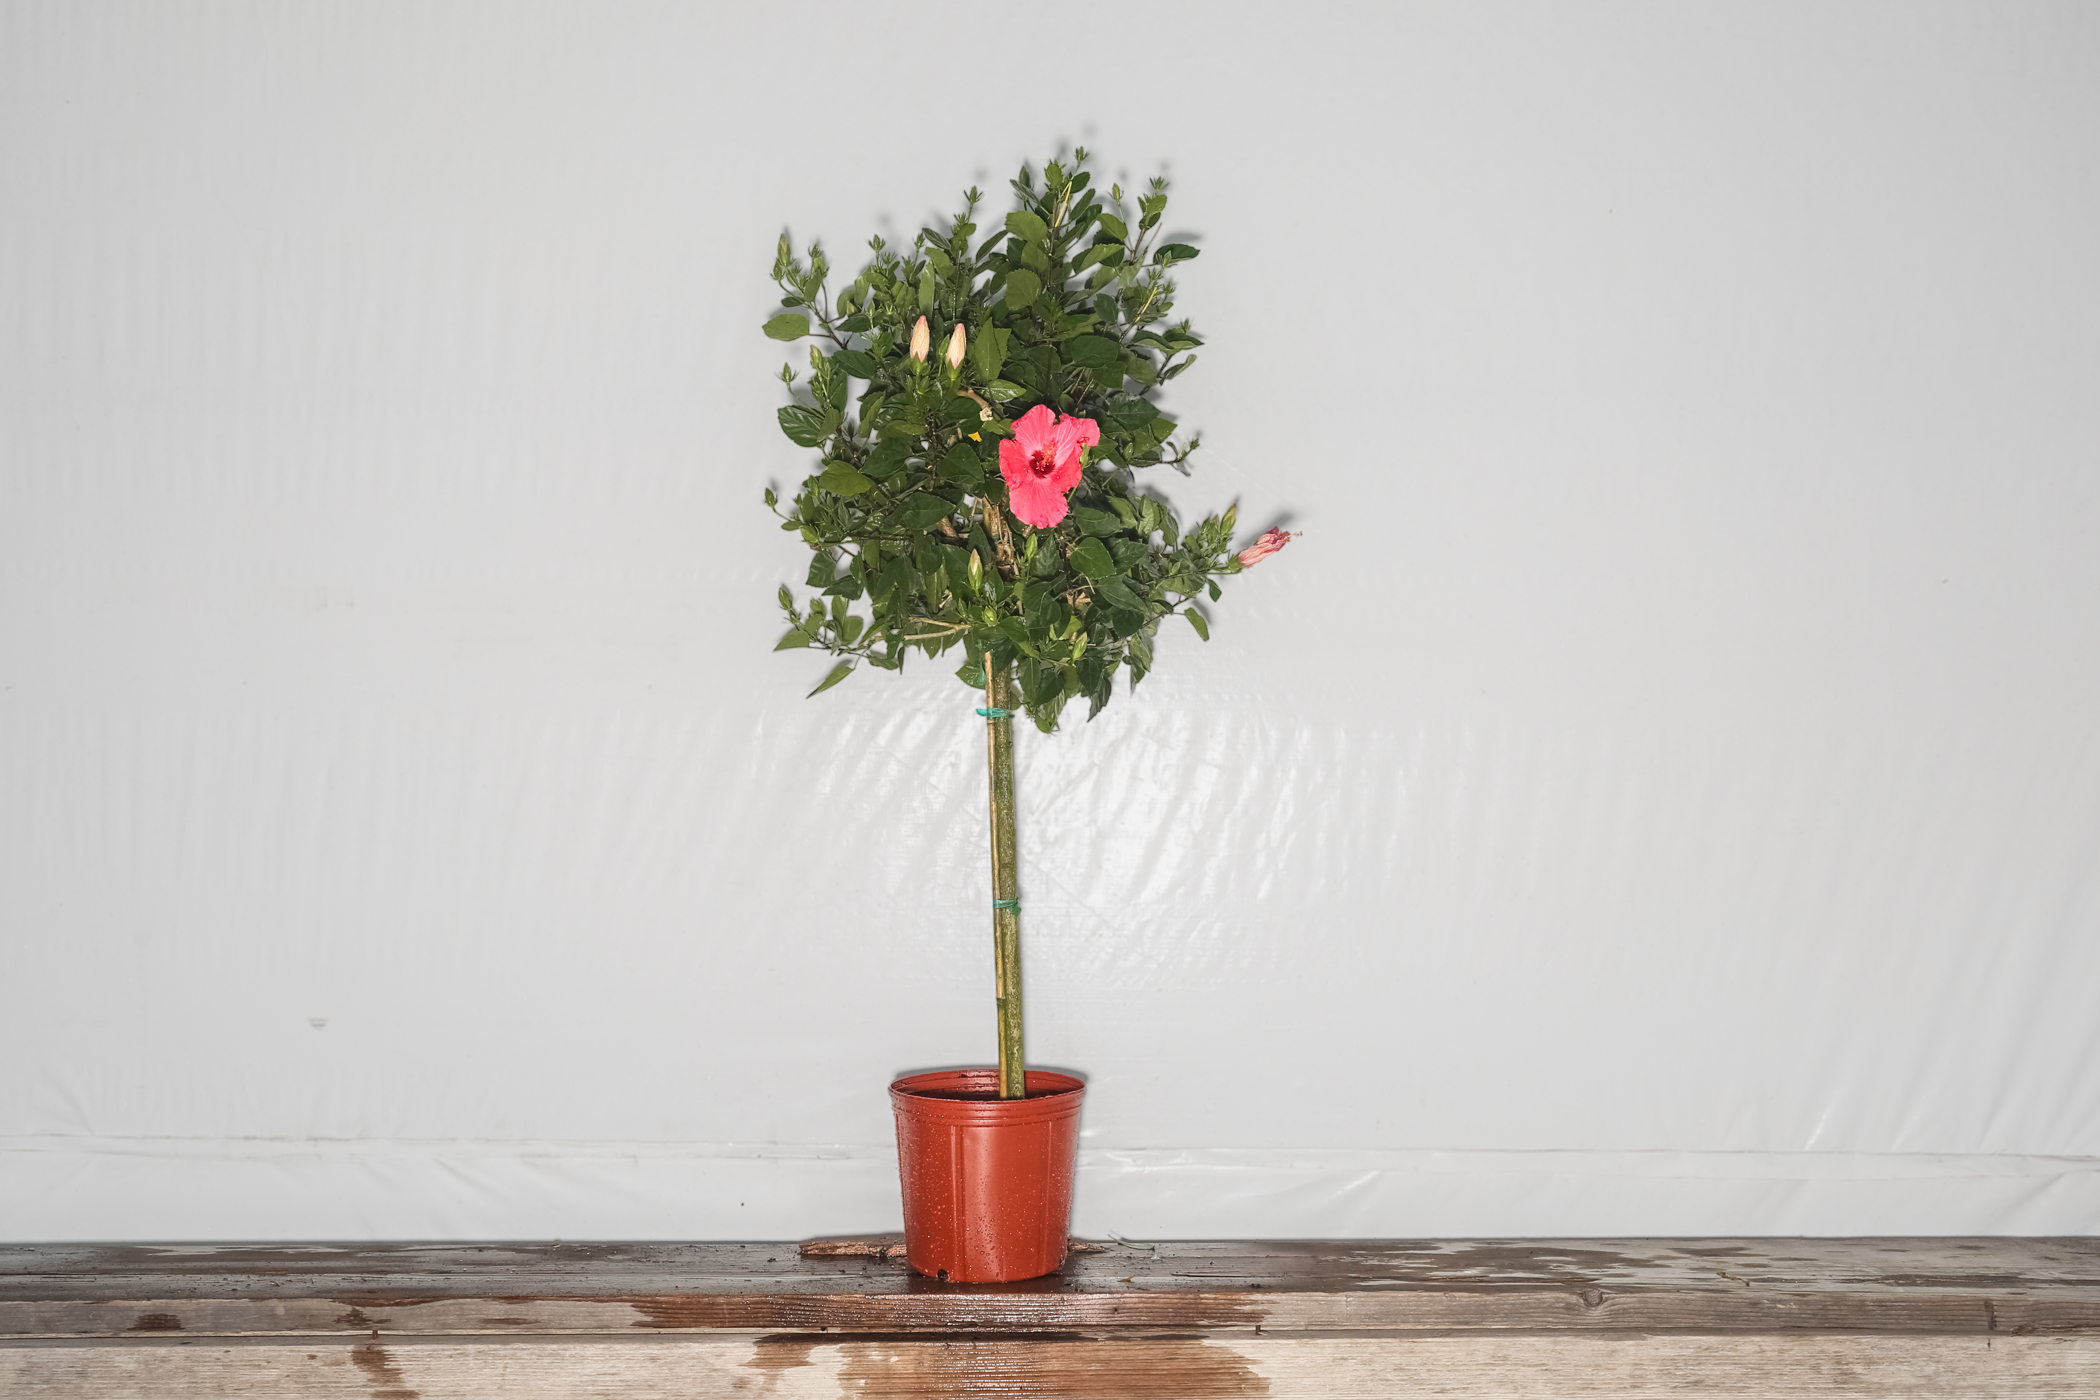 Hibiscus Standard Pink Painted Lady Tree 7 Gallon